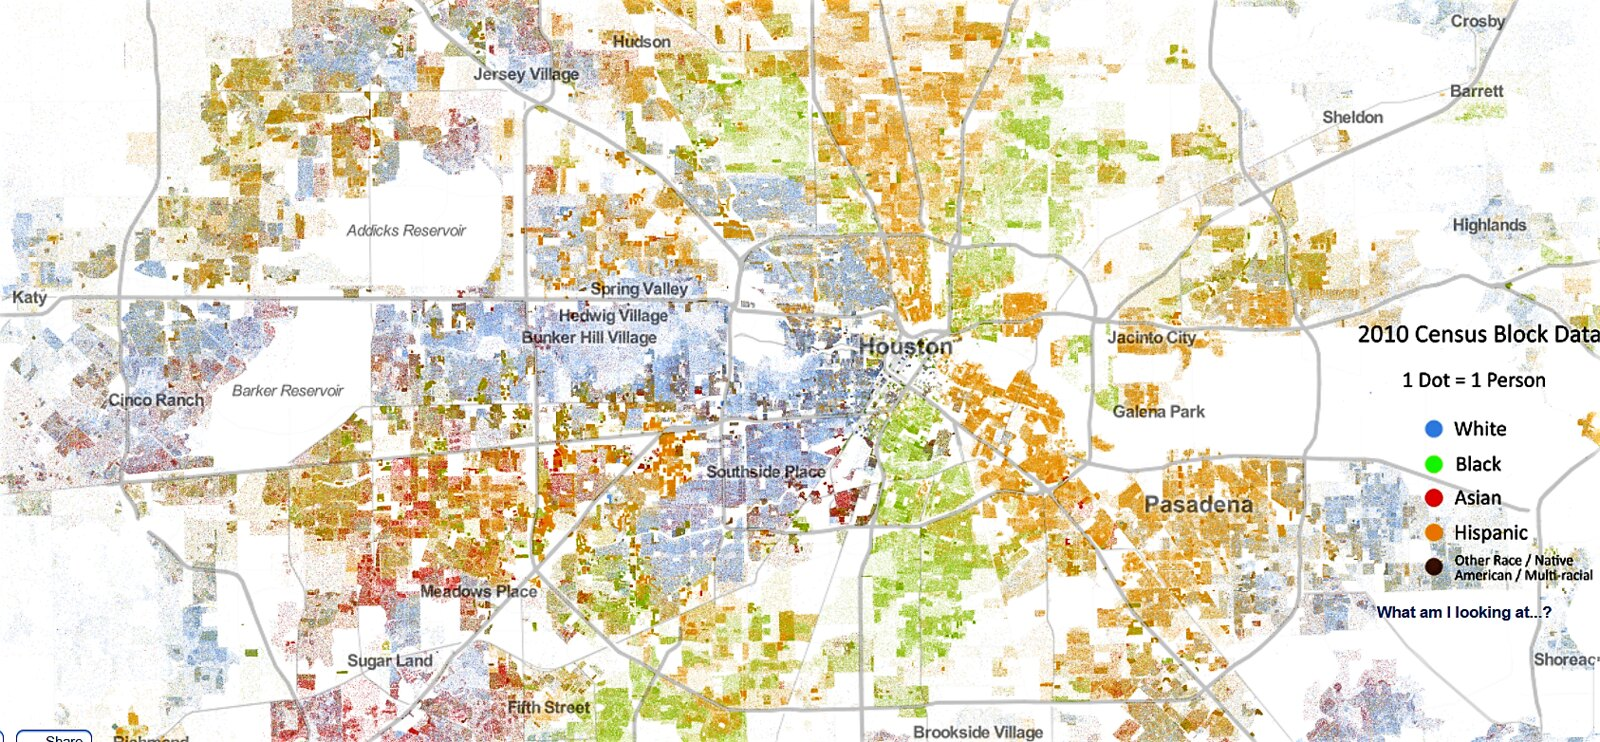 Greater Houston Mapped by Race and Ethnicity  Data source   Flickr